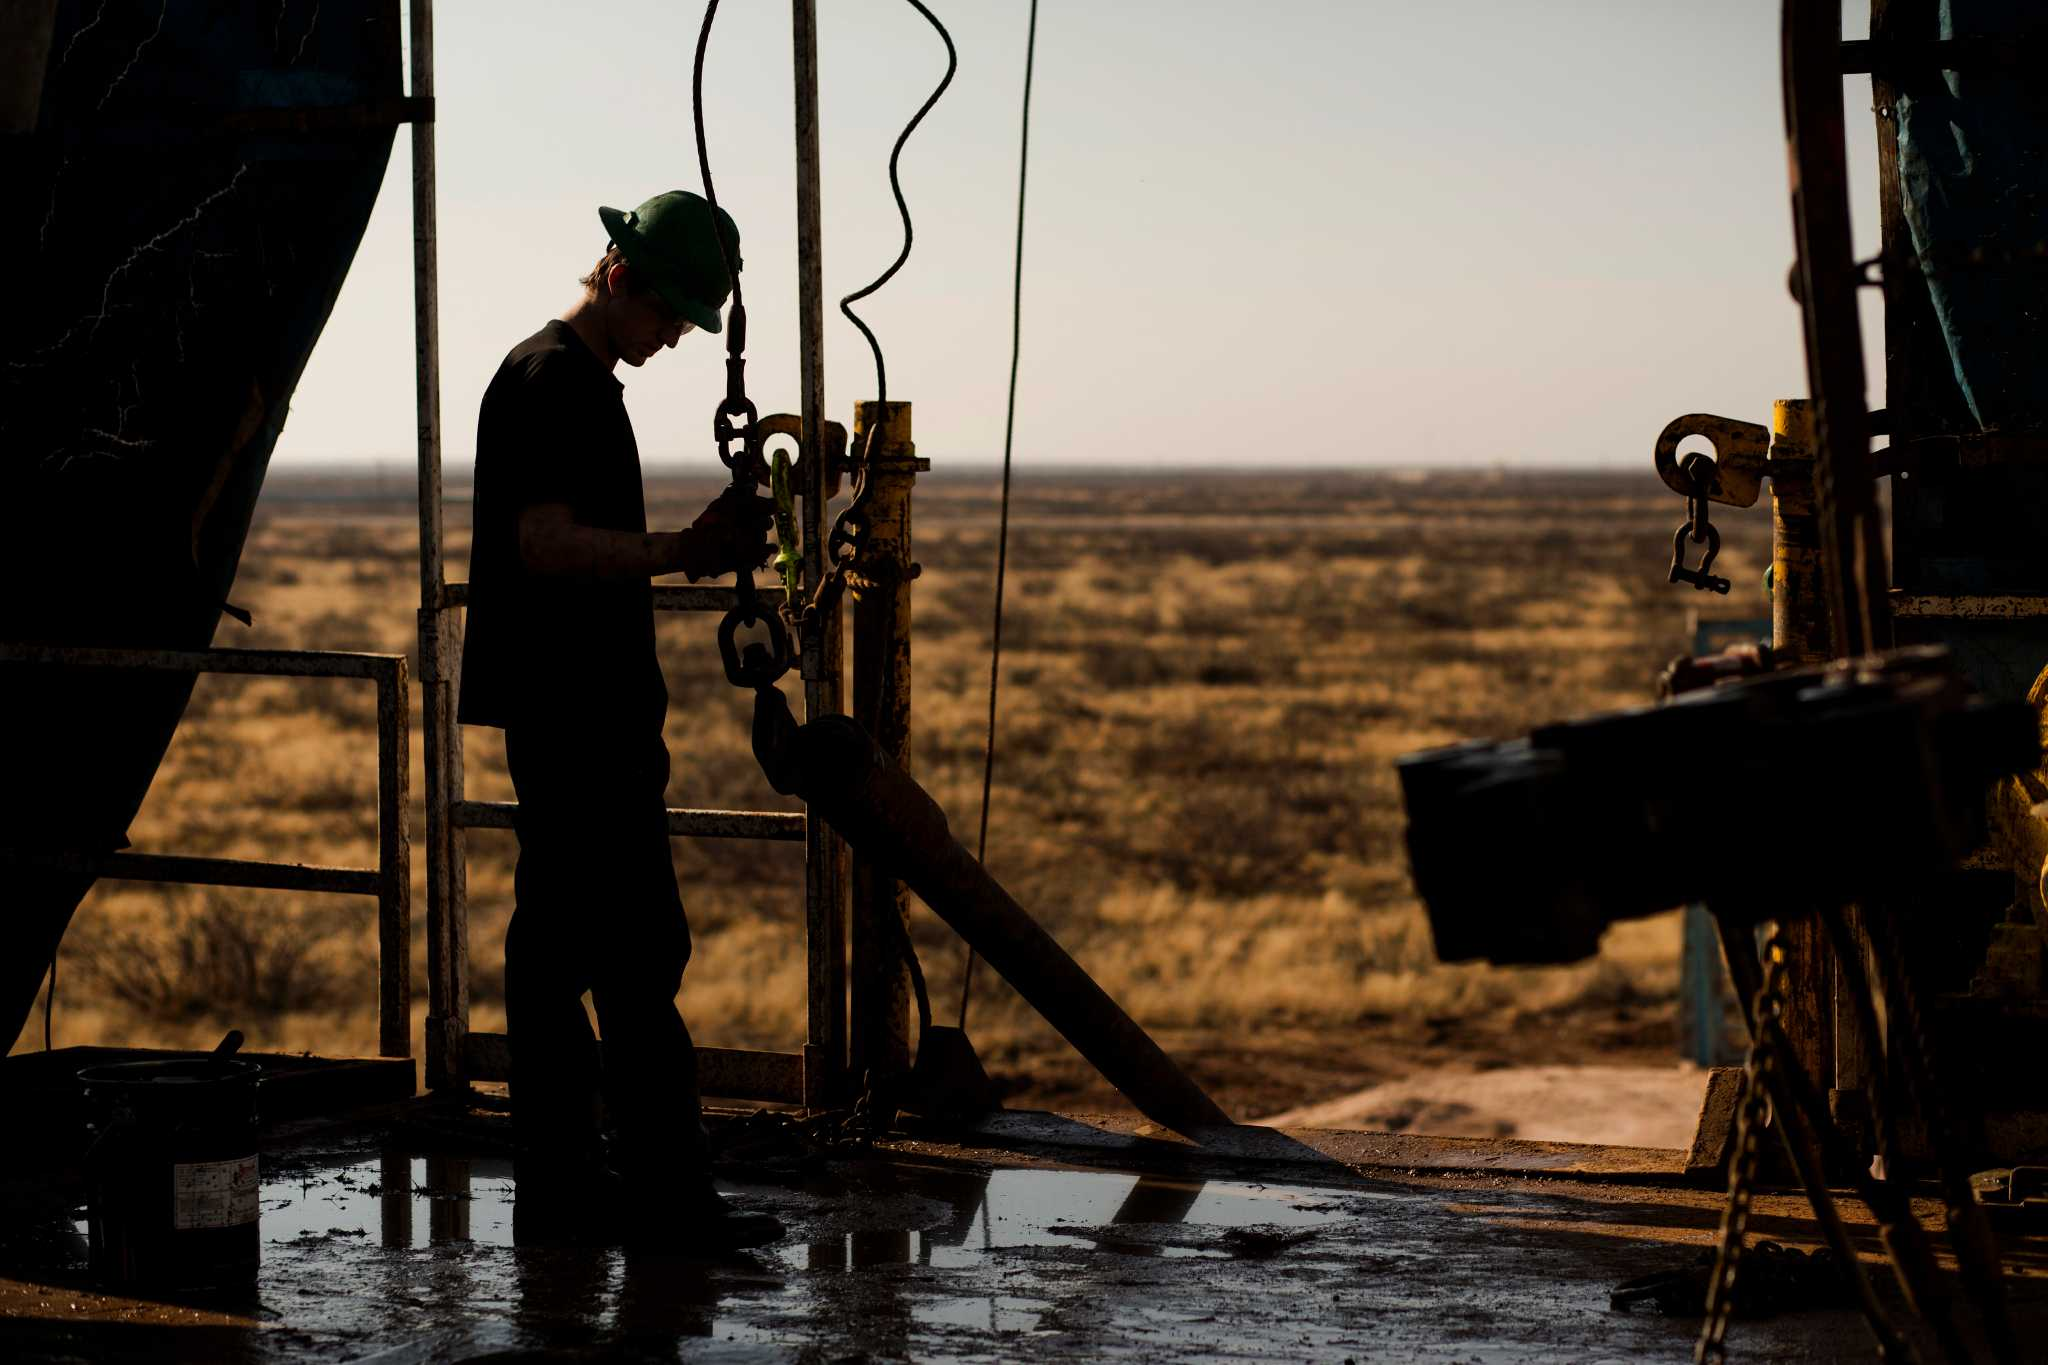 Grim outlook for Texas oil workers despite crude rally Houston